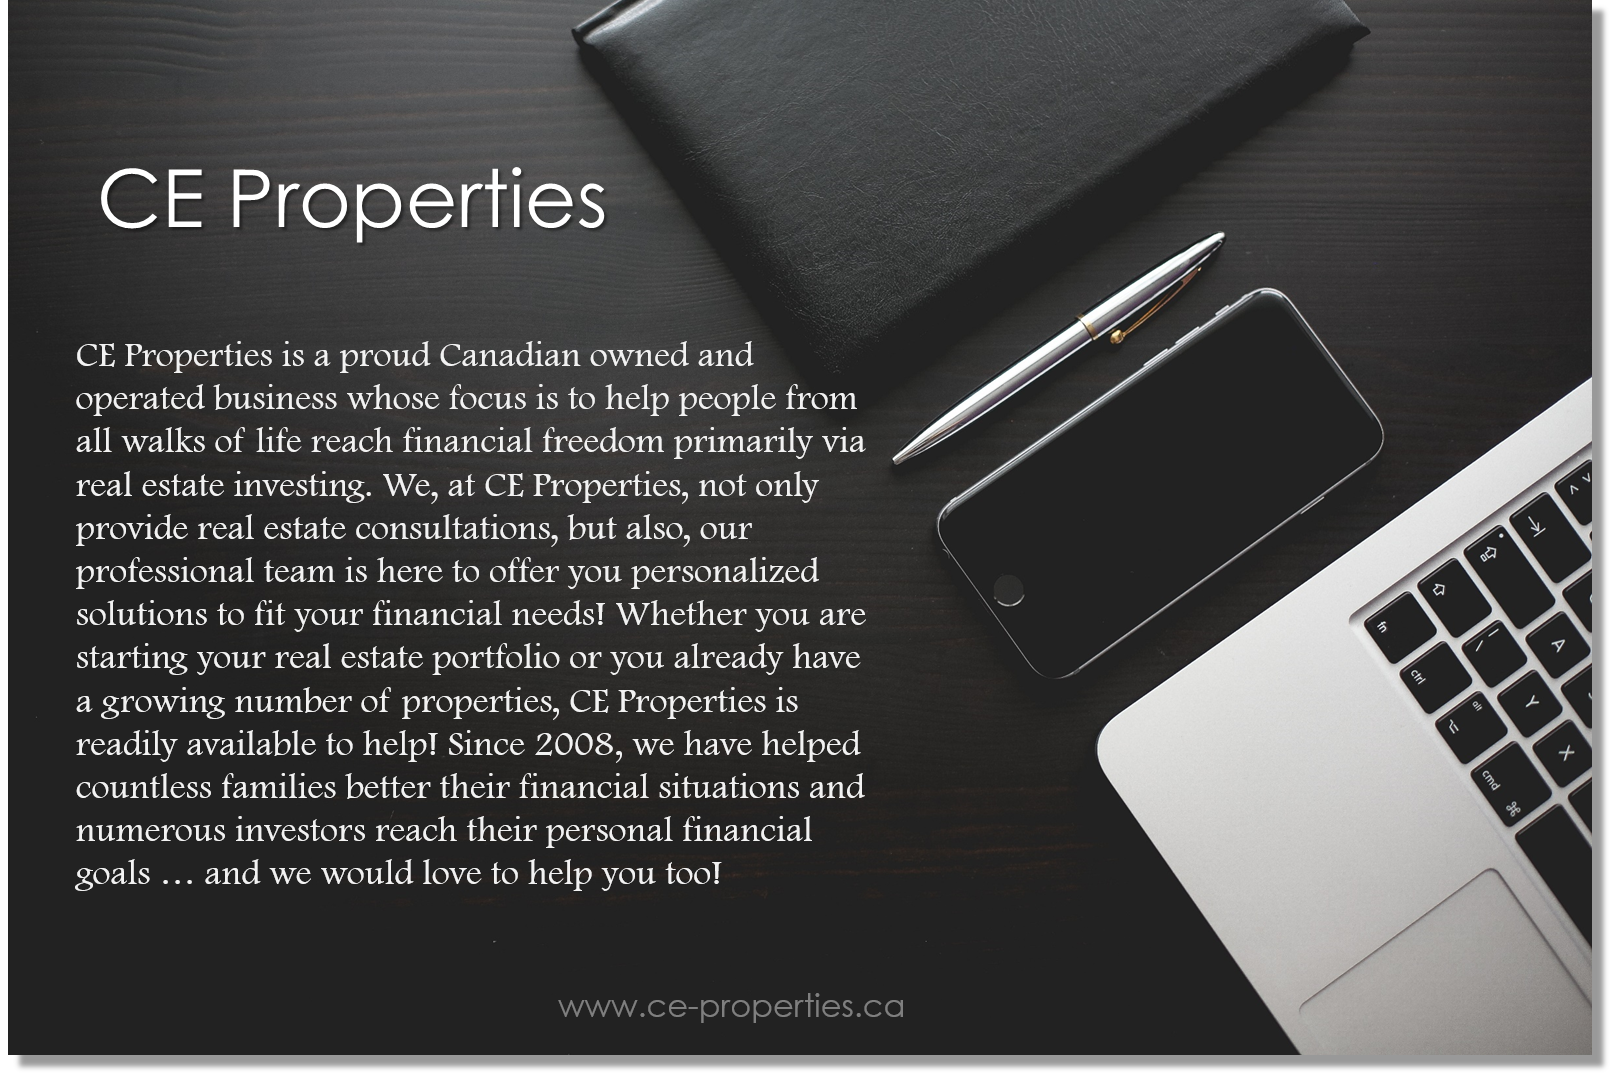 Who is CE Properties 2